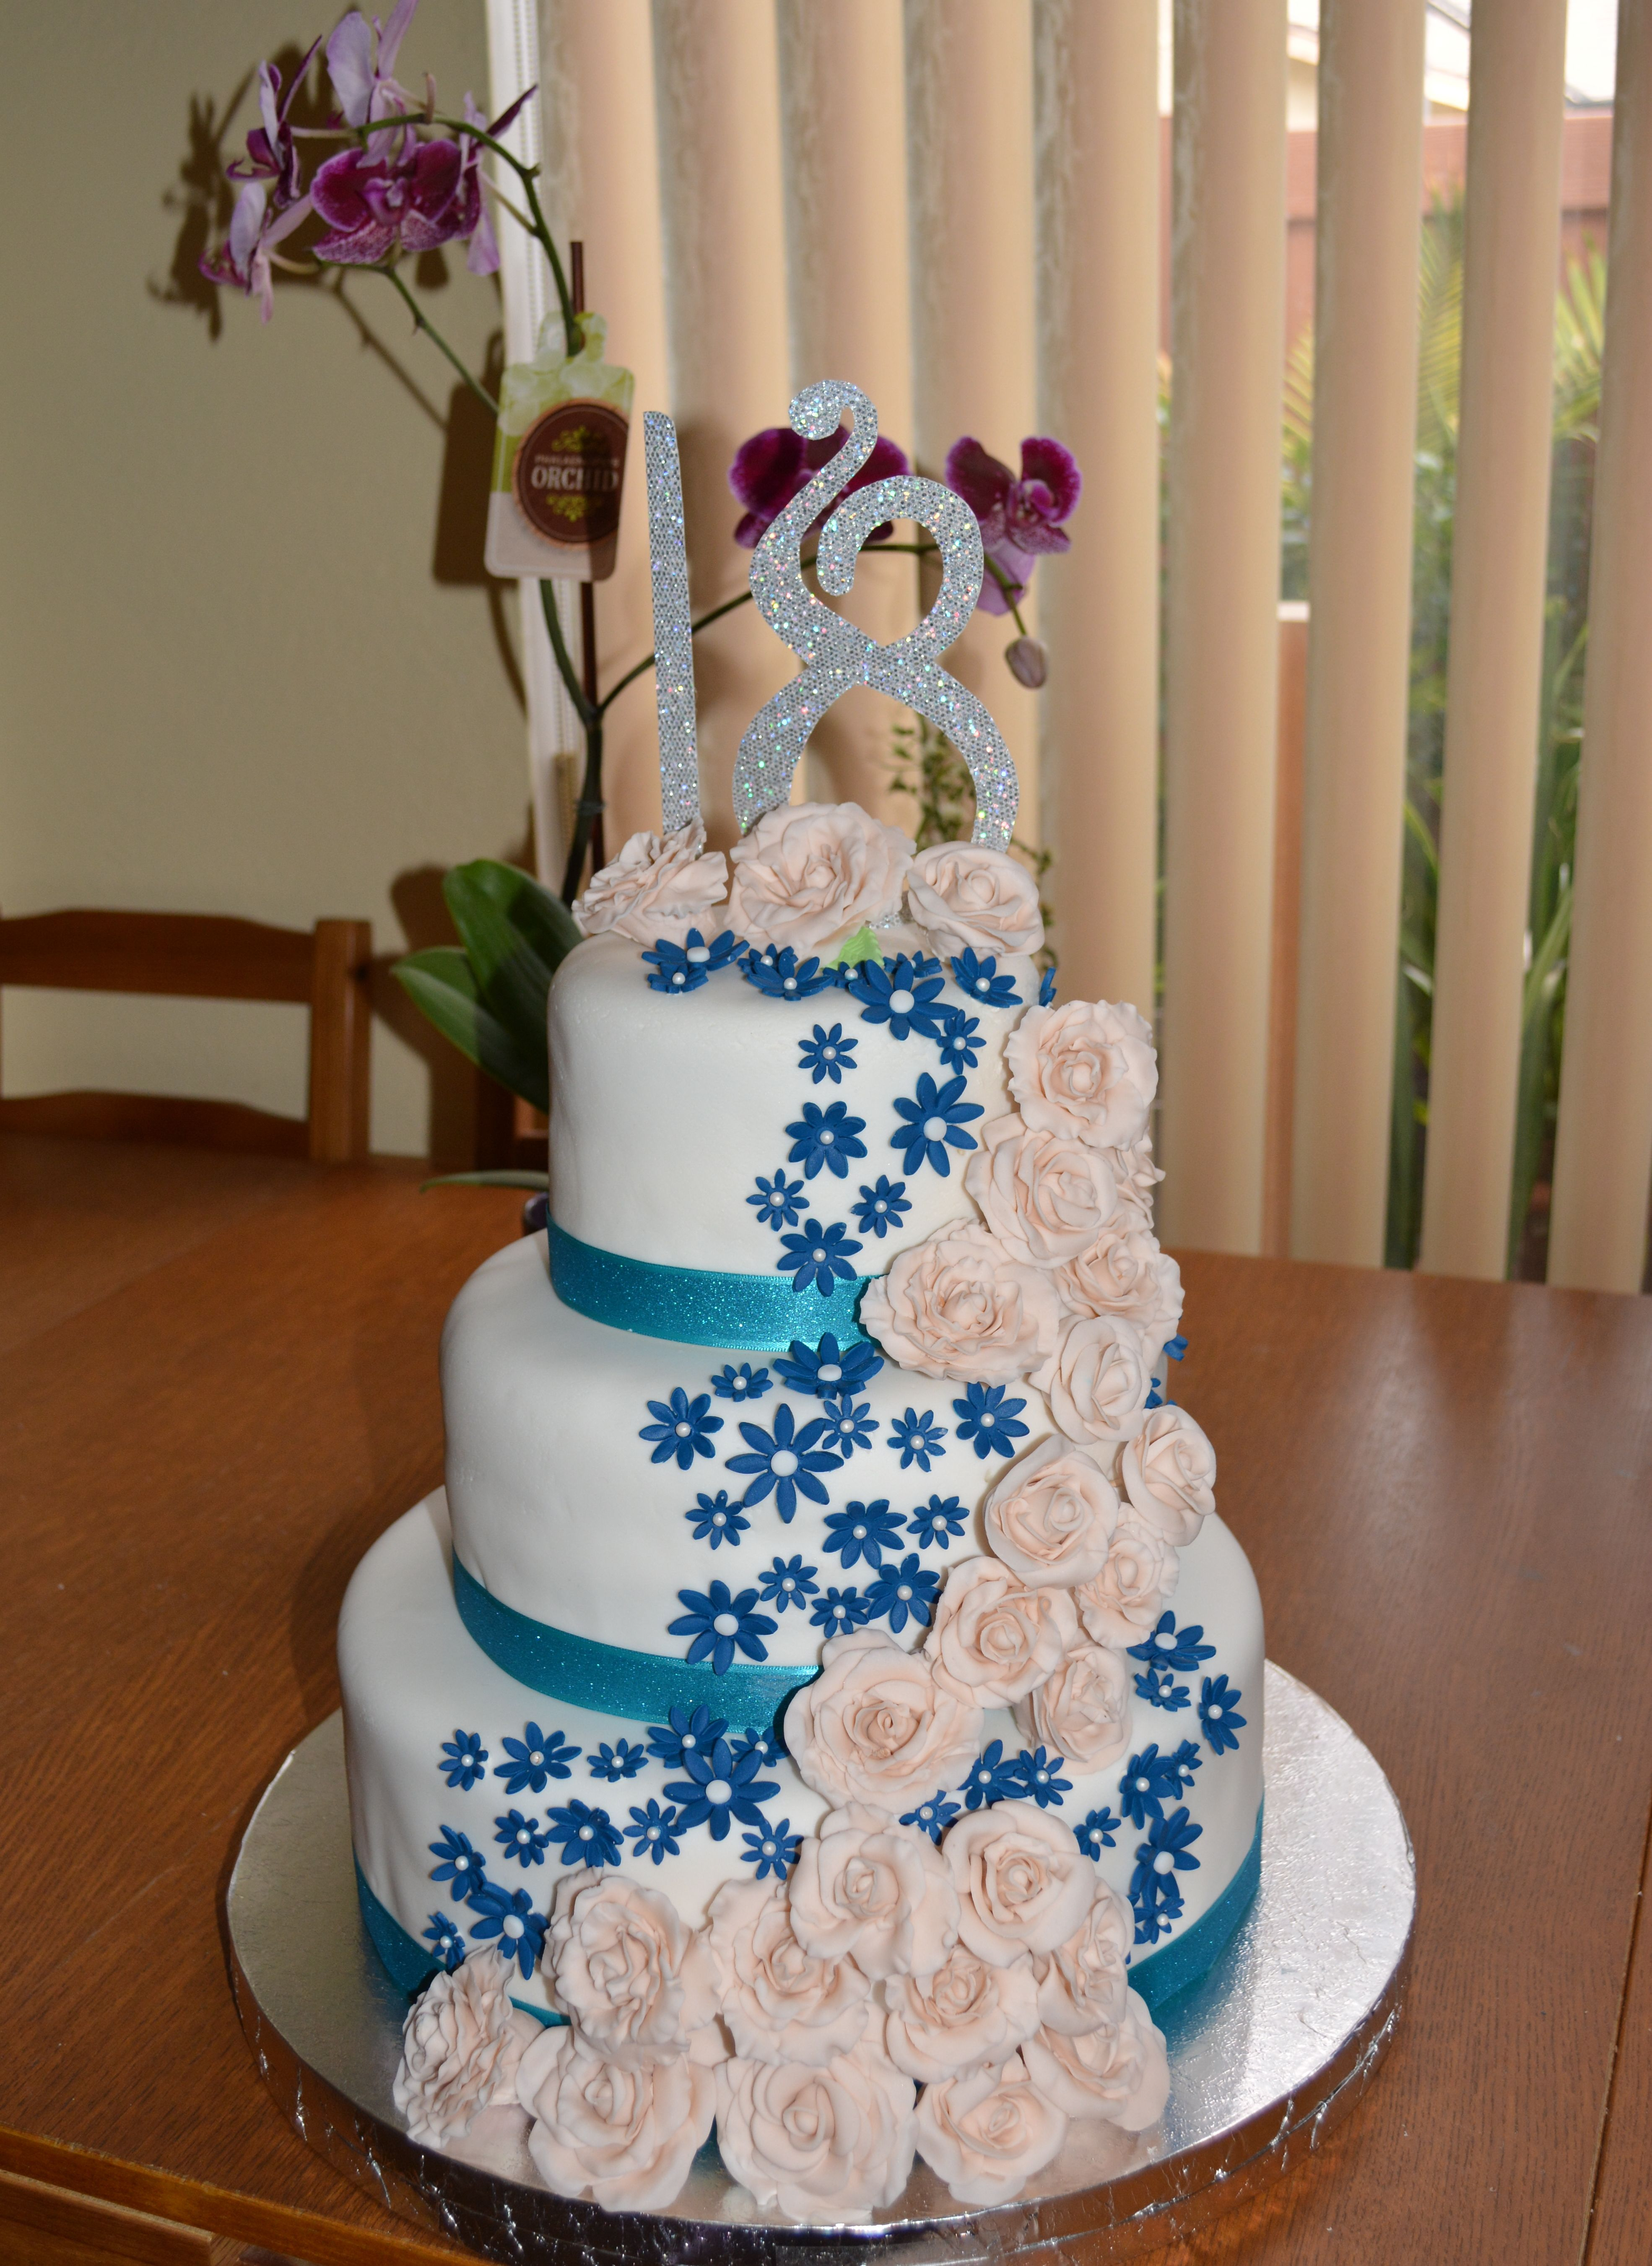 3 Tier Cake With Cascading Flowers For An 18th Debut